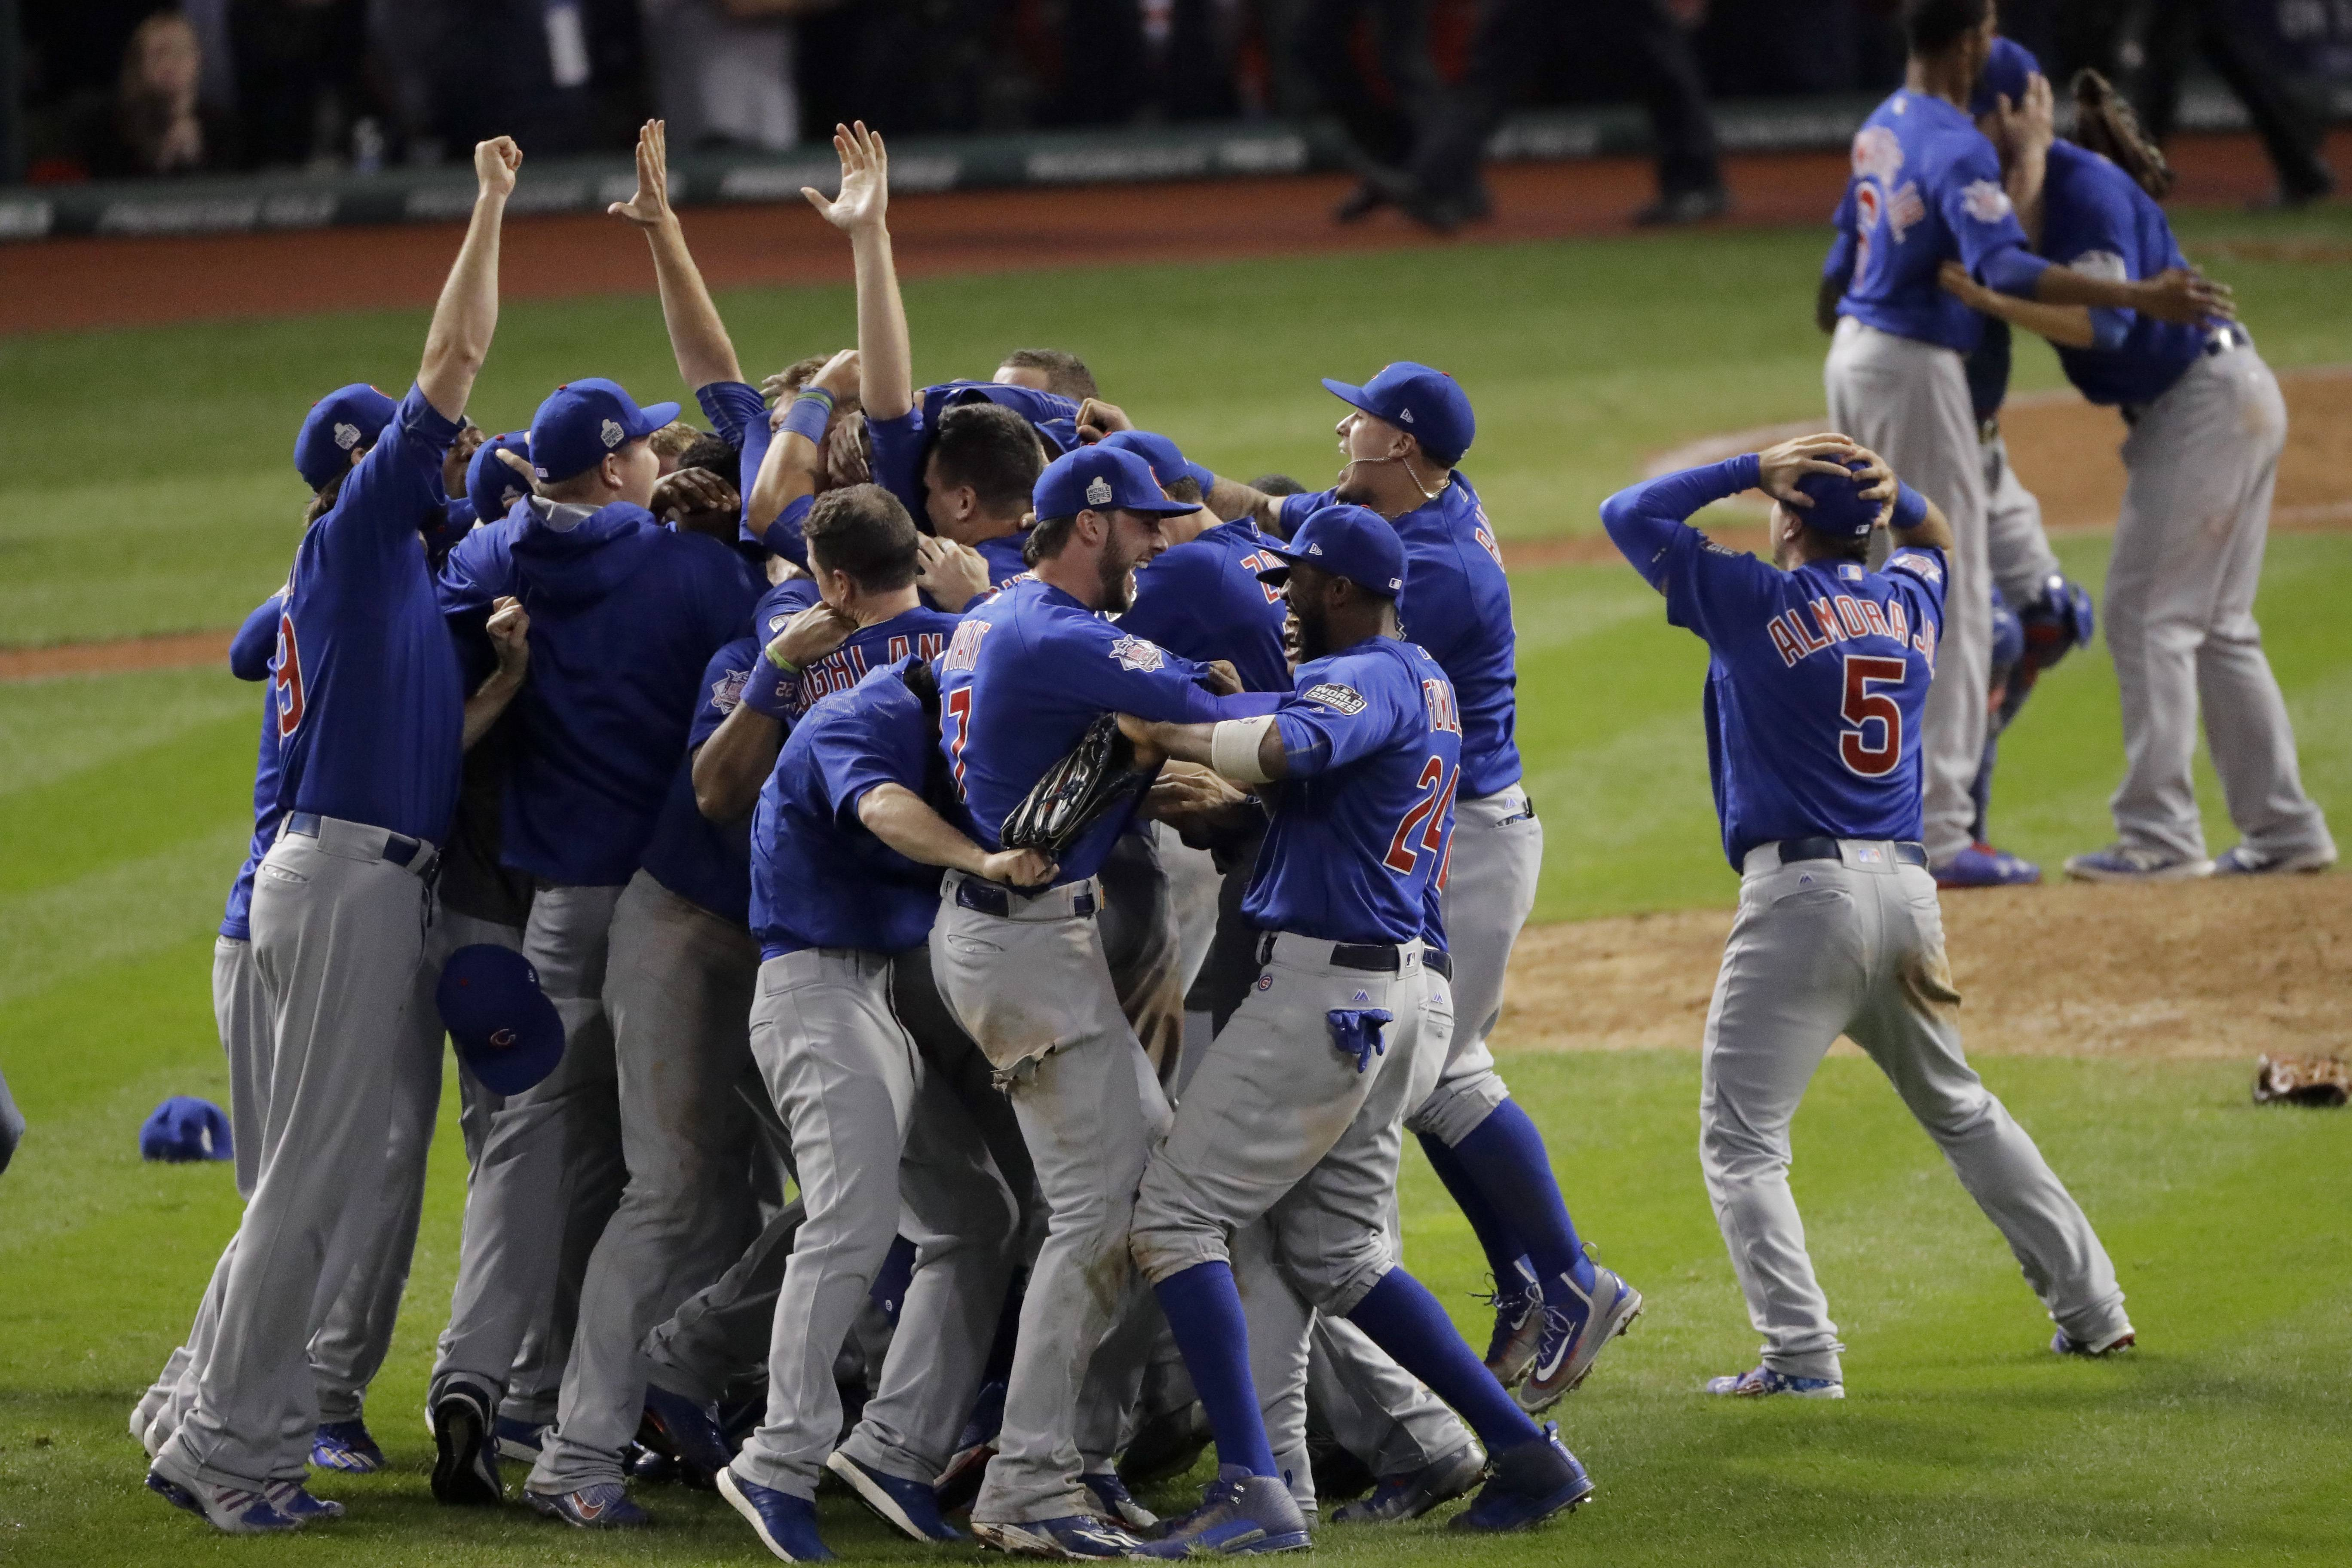 The Cubs celebrate after Game 7 of the Major League Baseball World Series against the Cleveland Indians Thursday, Nov. 3, 2016, in Cleveland. The Cubs won 8-7 in 10 innings to win the series 4-3. The World Series champion Cubs will make a celebratory visit to the White House before President Barack Obama leaves office.